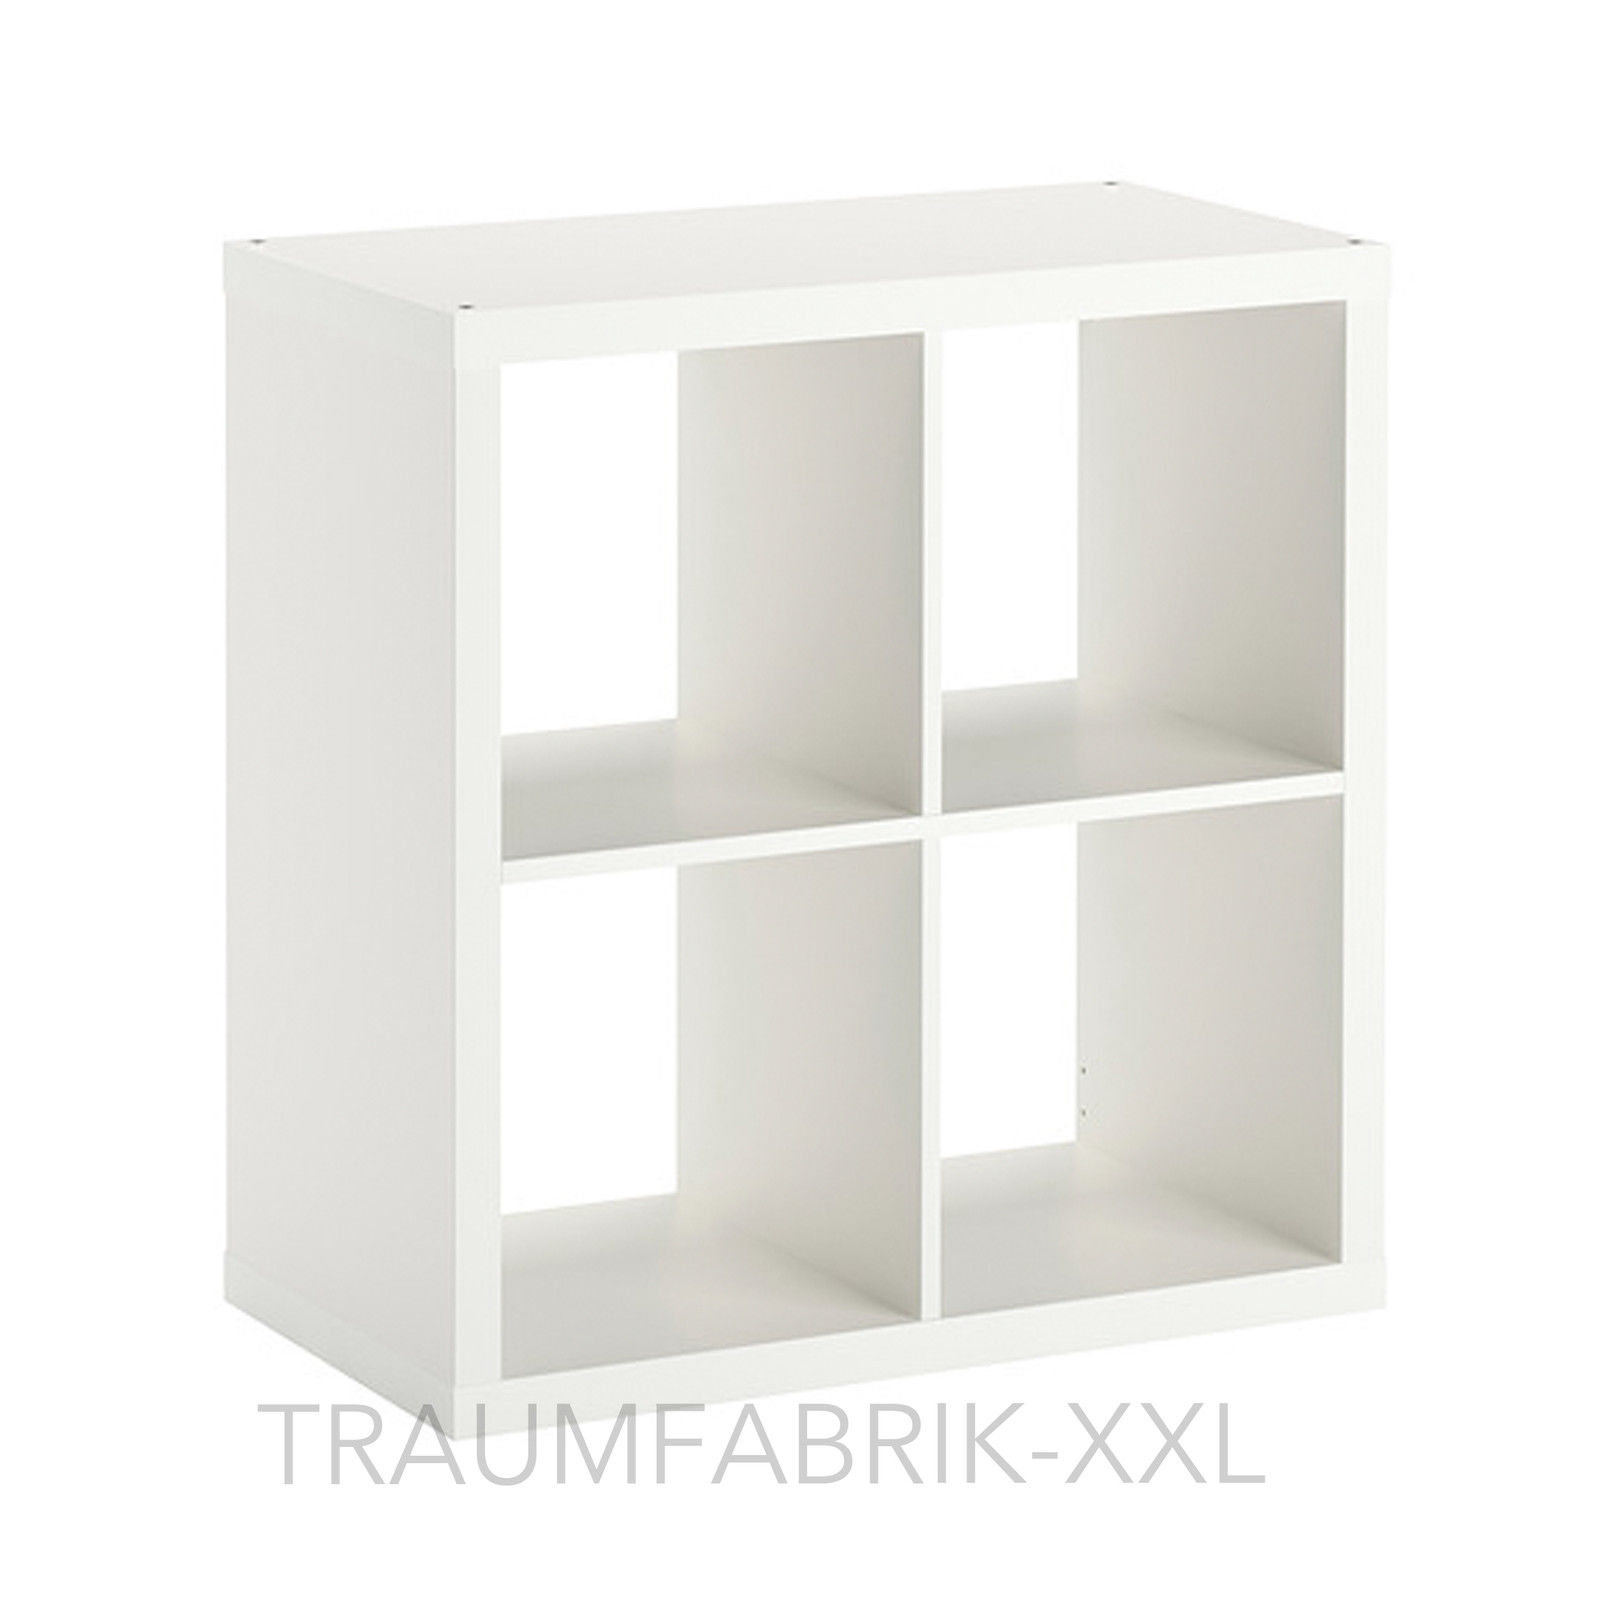 ikea stauraumregal 77×77 cm bÜcherregal kinderzimmer regal wandregal